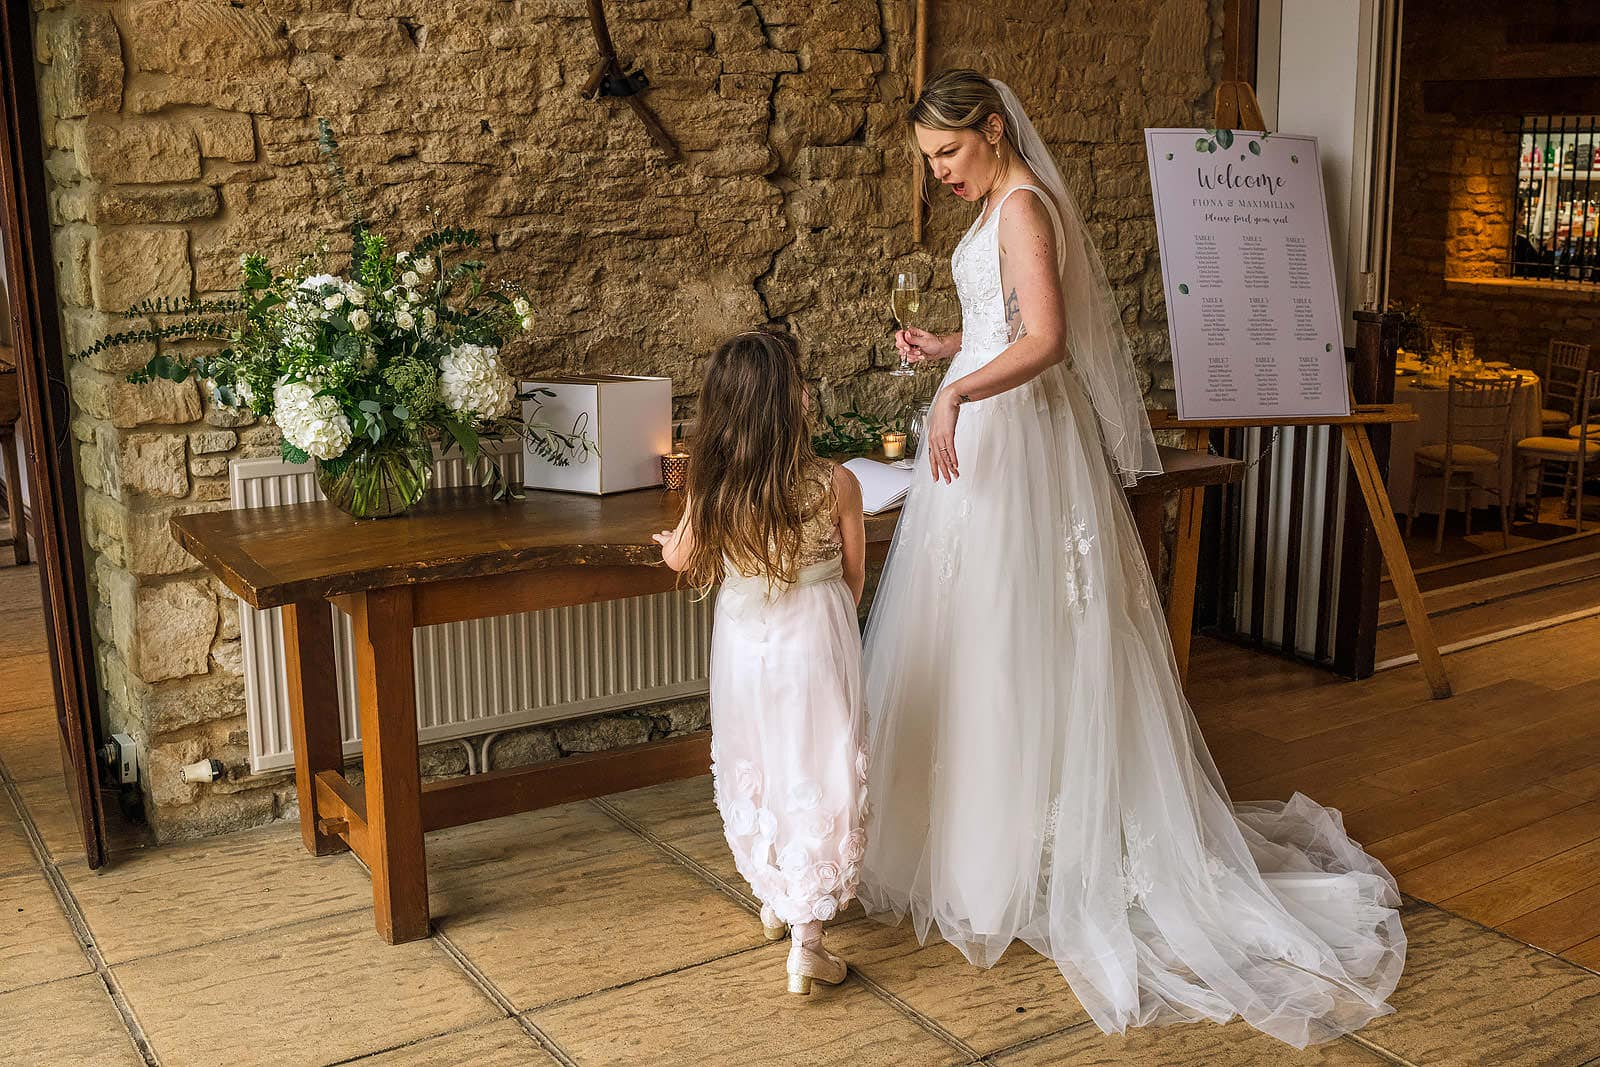 The Great Tythe Barn wedding